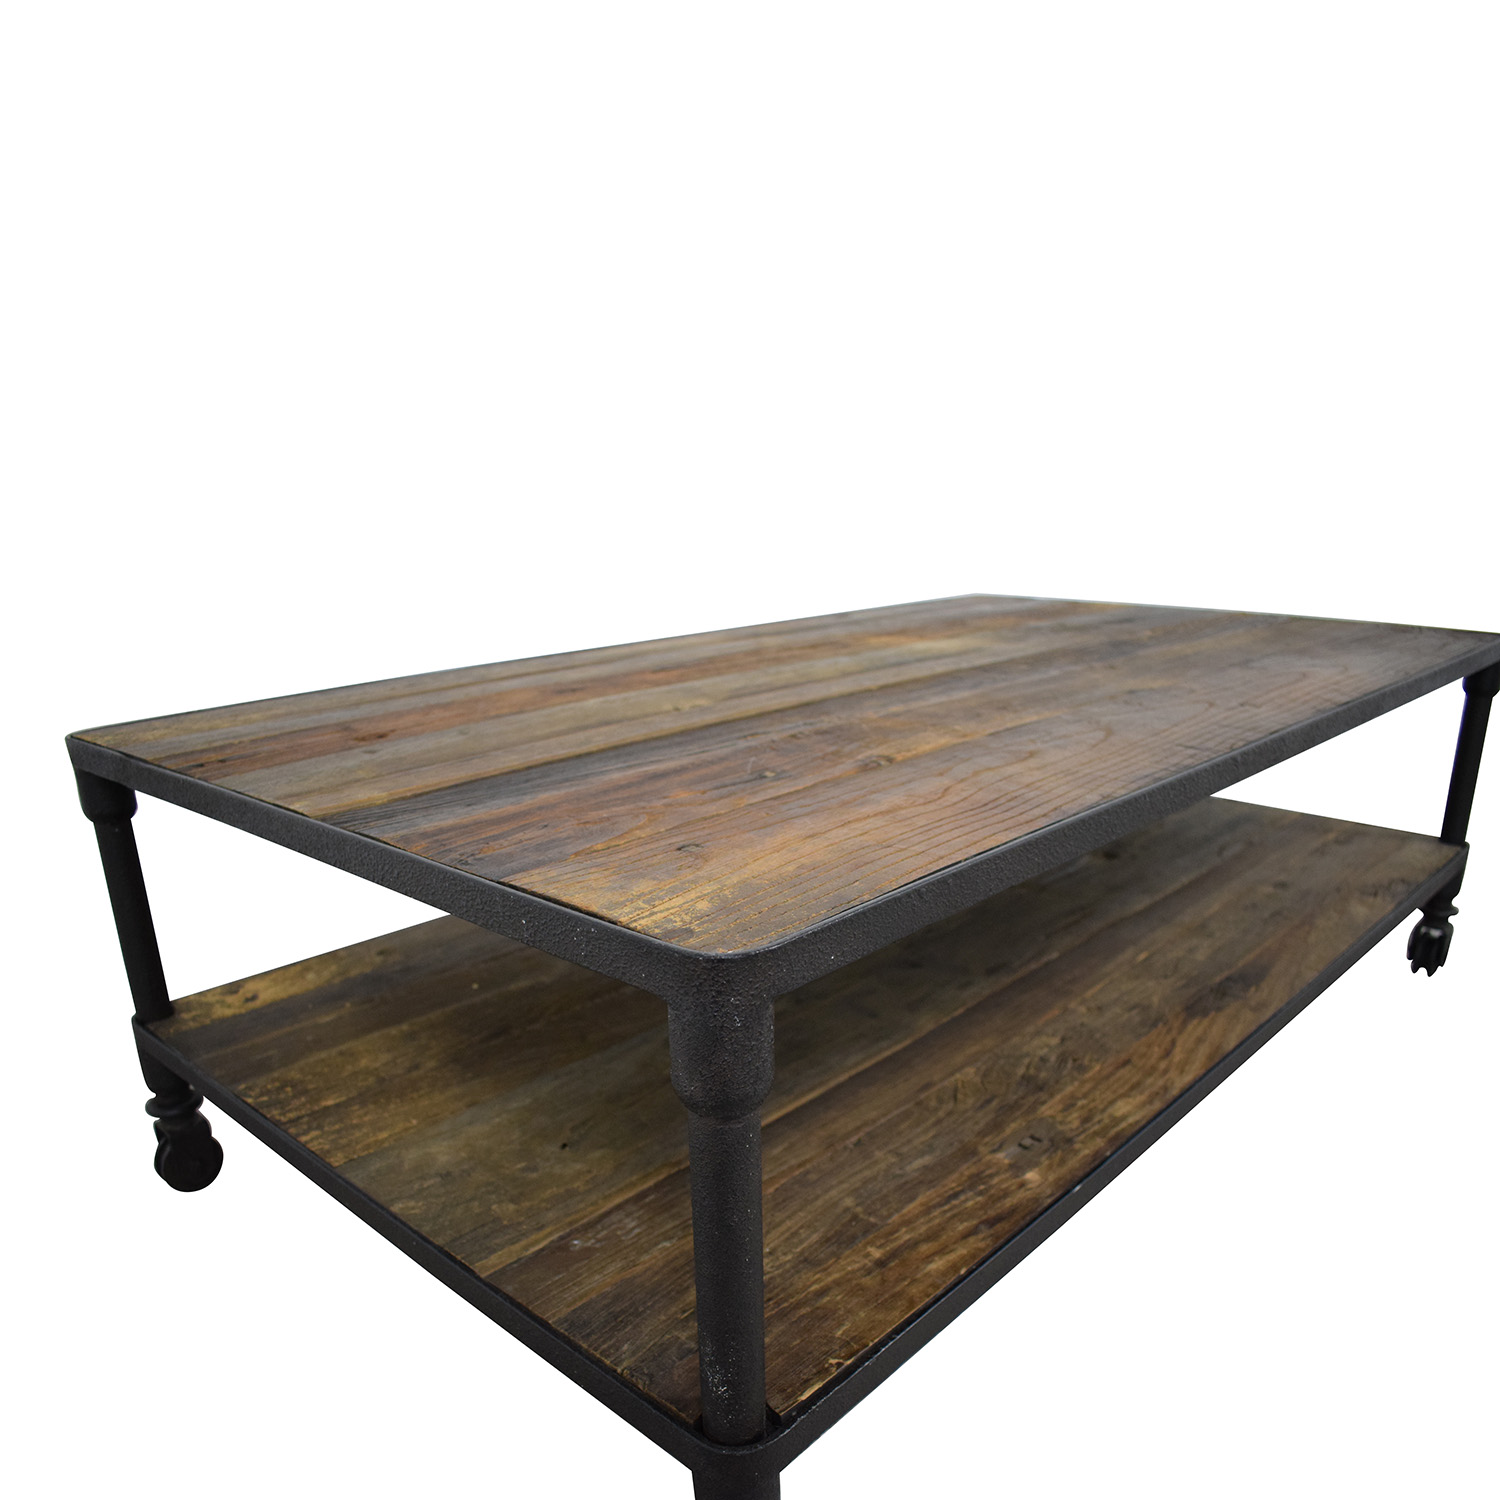 57% OFF   Restoration Hardware Restoration Hardware Dutch Industrial Coffee  Table / Tables